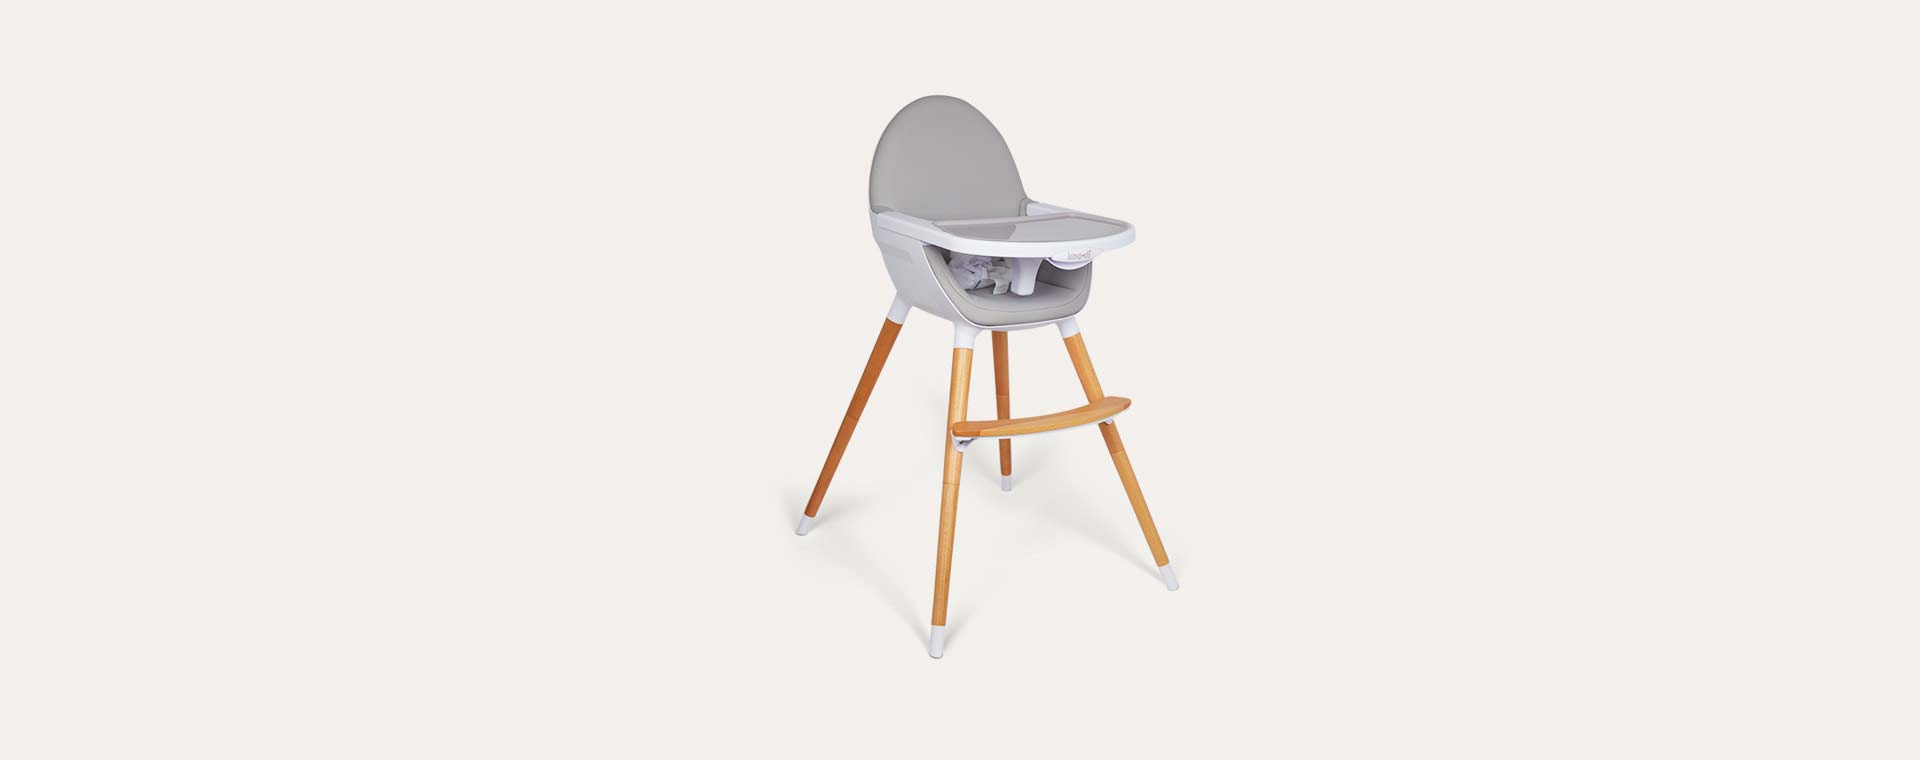 high chair wooden legs swing dublin buy the koo di duo highchair at kidly grey